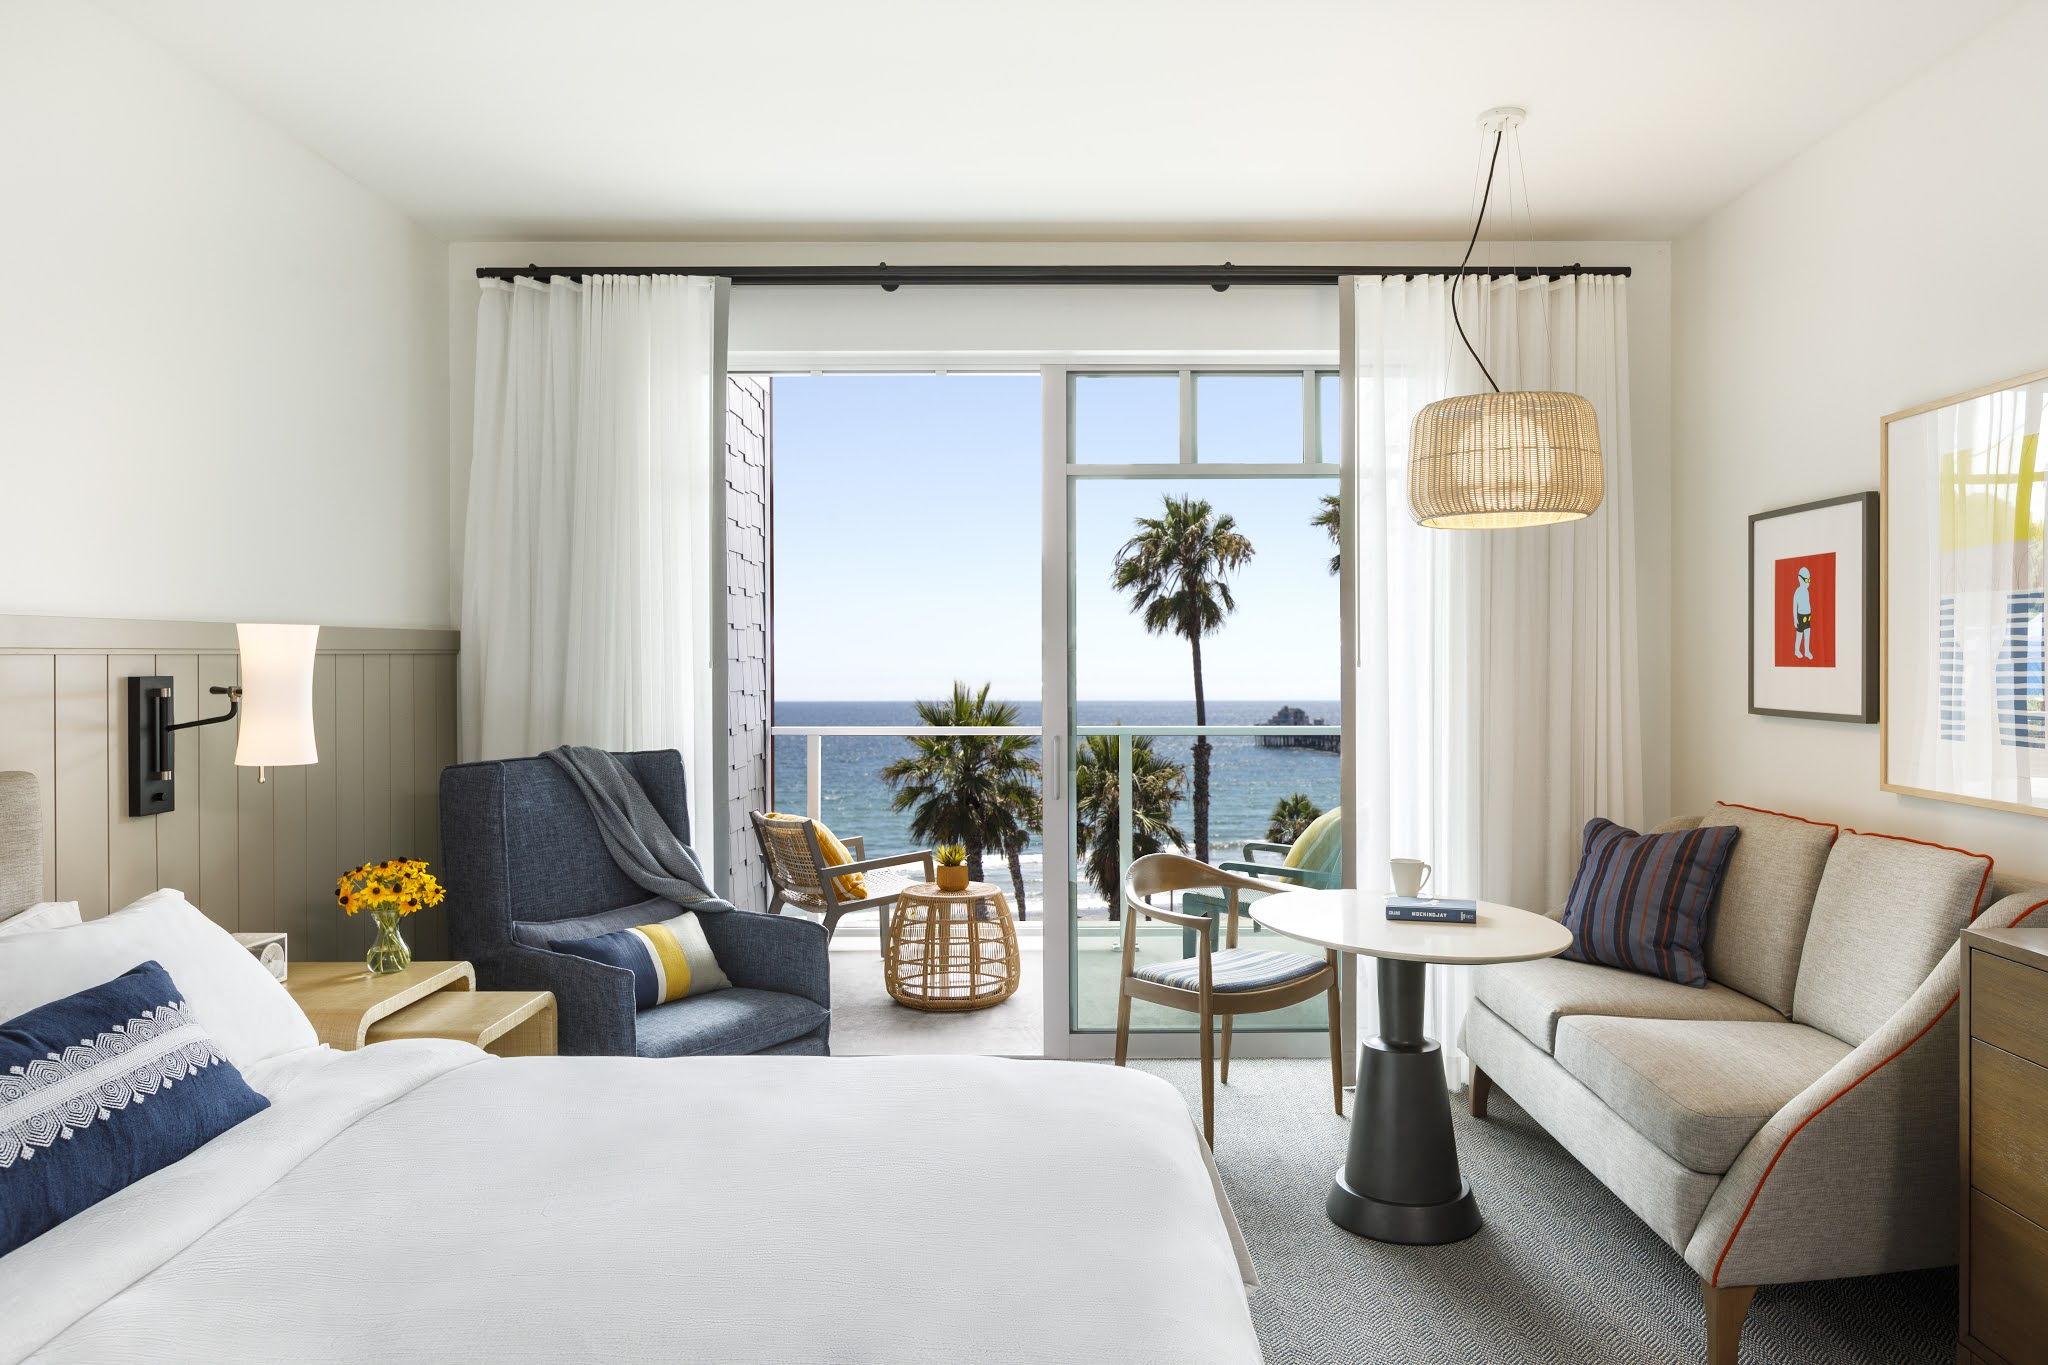 Hyatt global expansion to continue through 2025